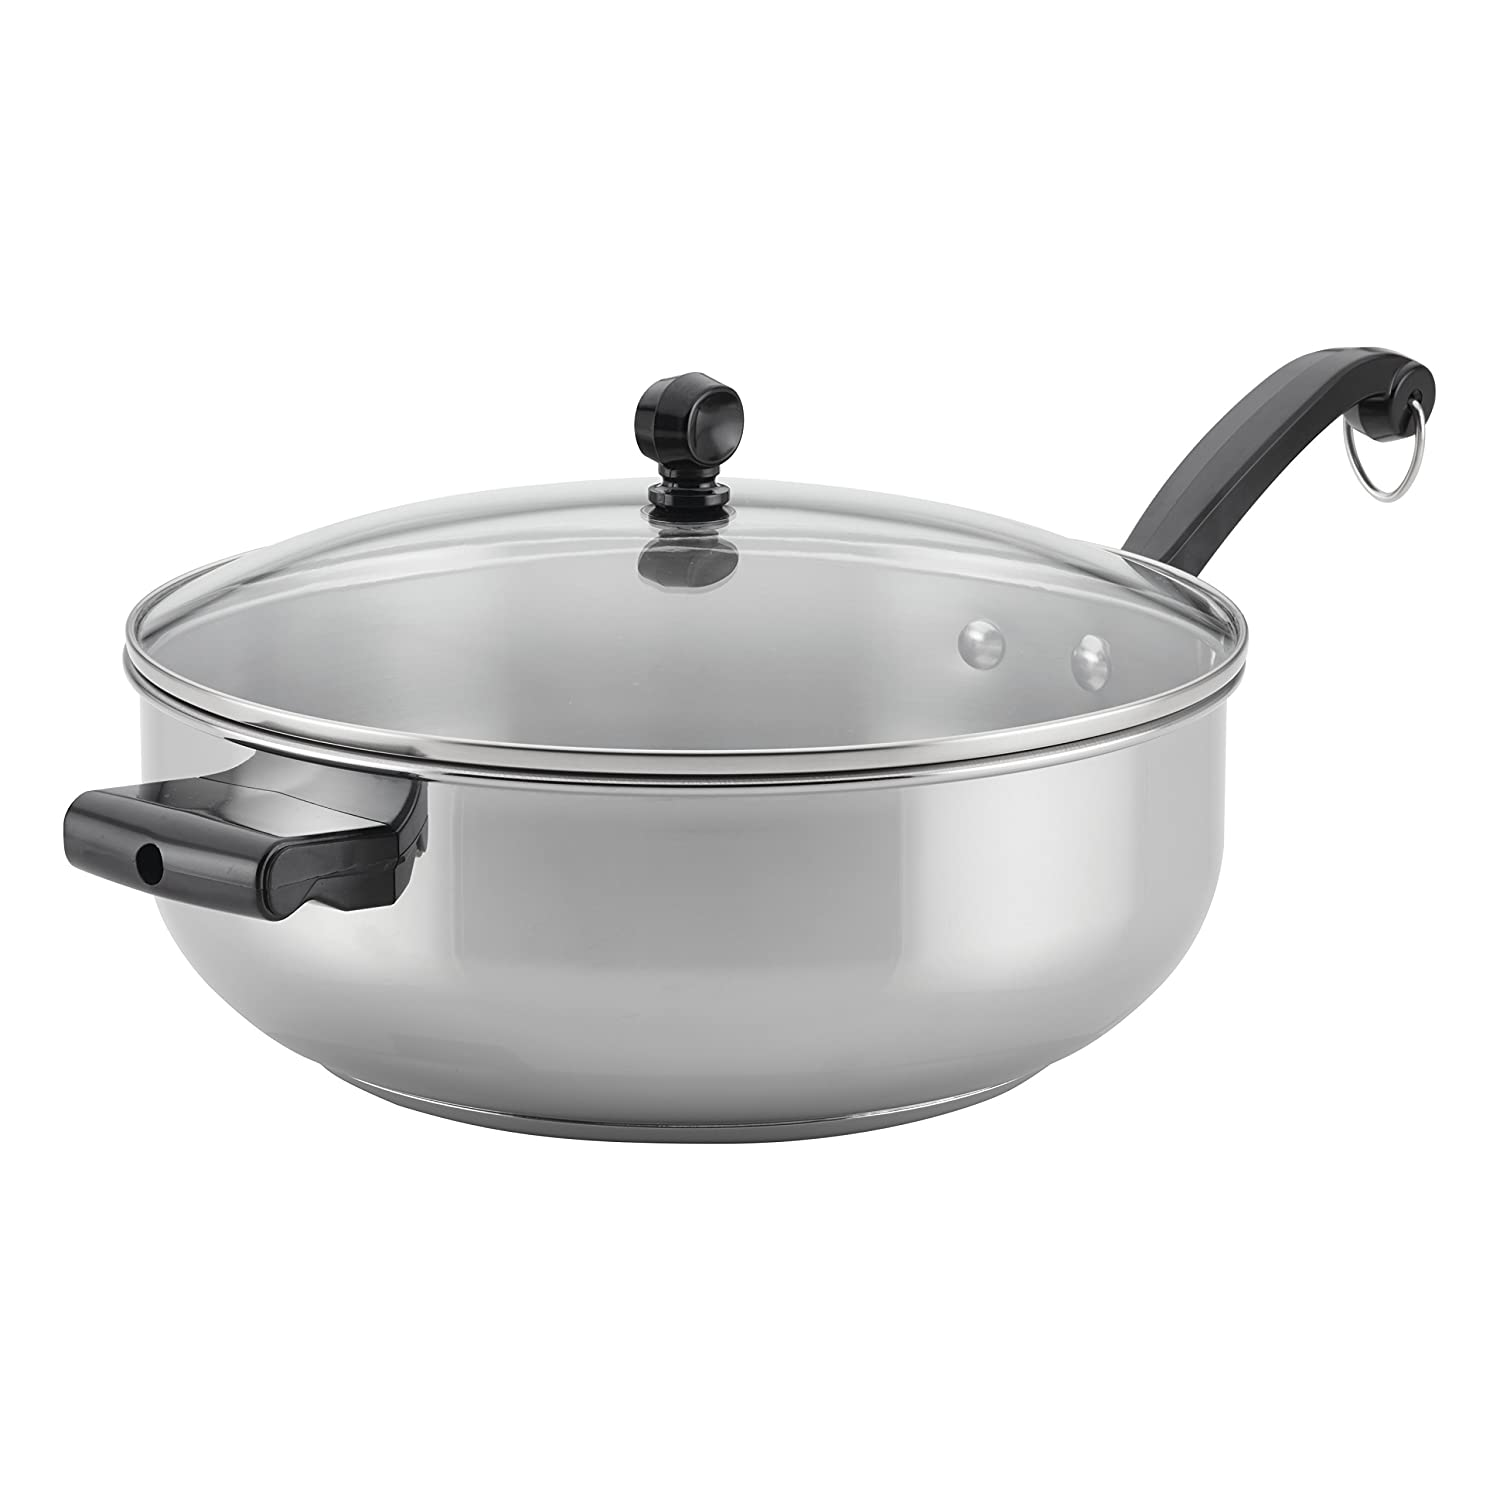 Farberware Classic Stainless Steel Cookware Covered Chef Pan, 6-Quart, with Helper Handle 70121